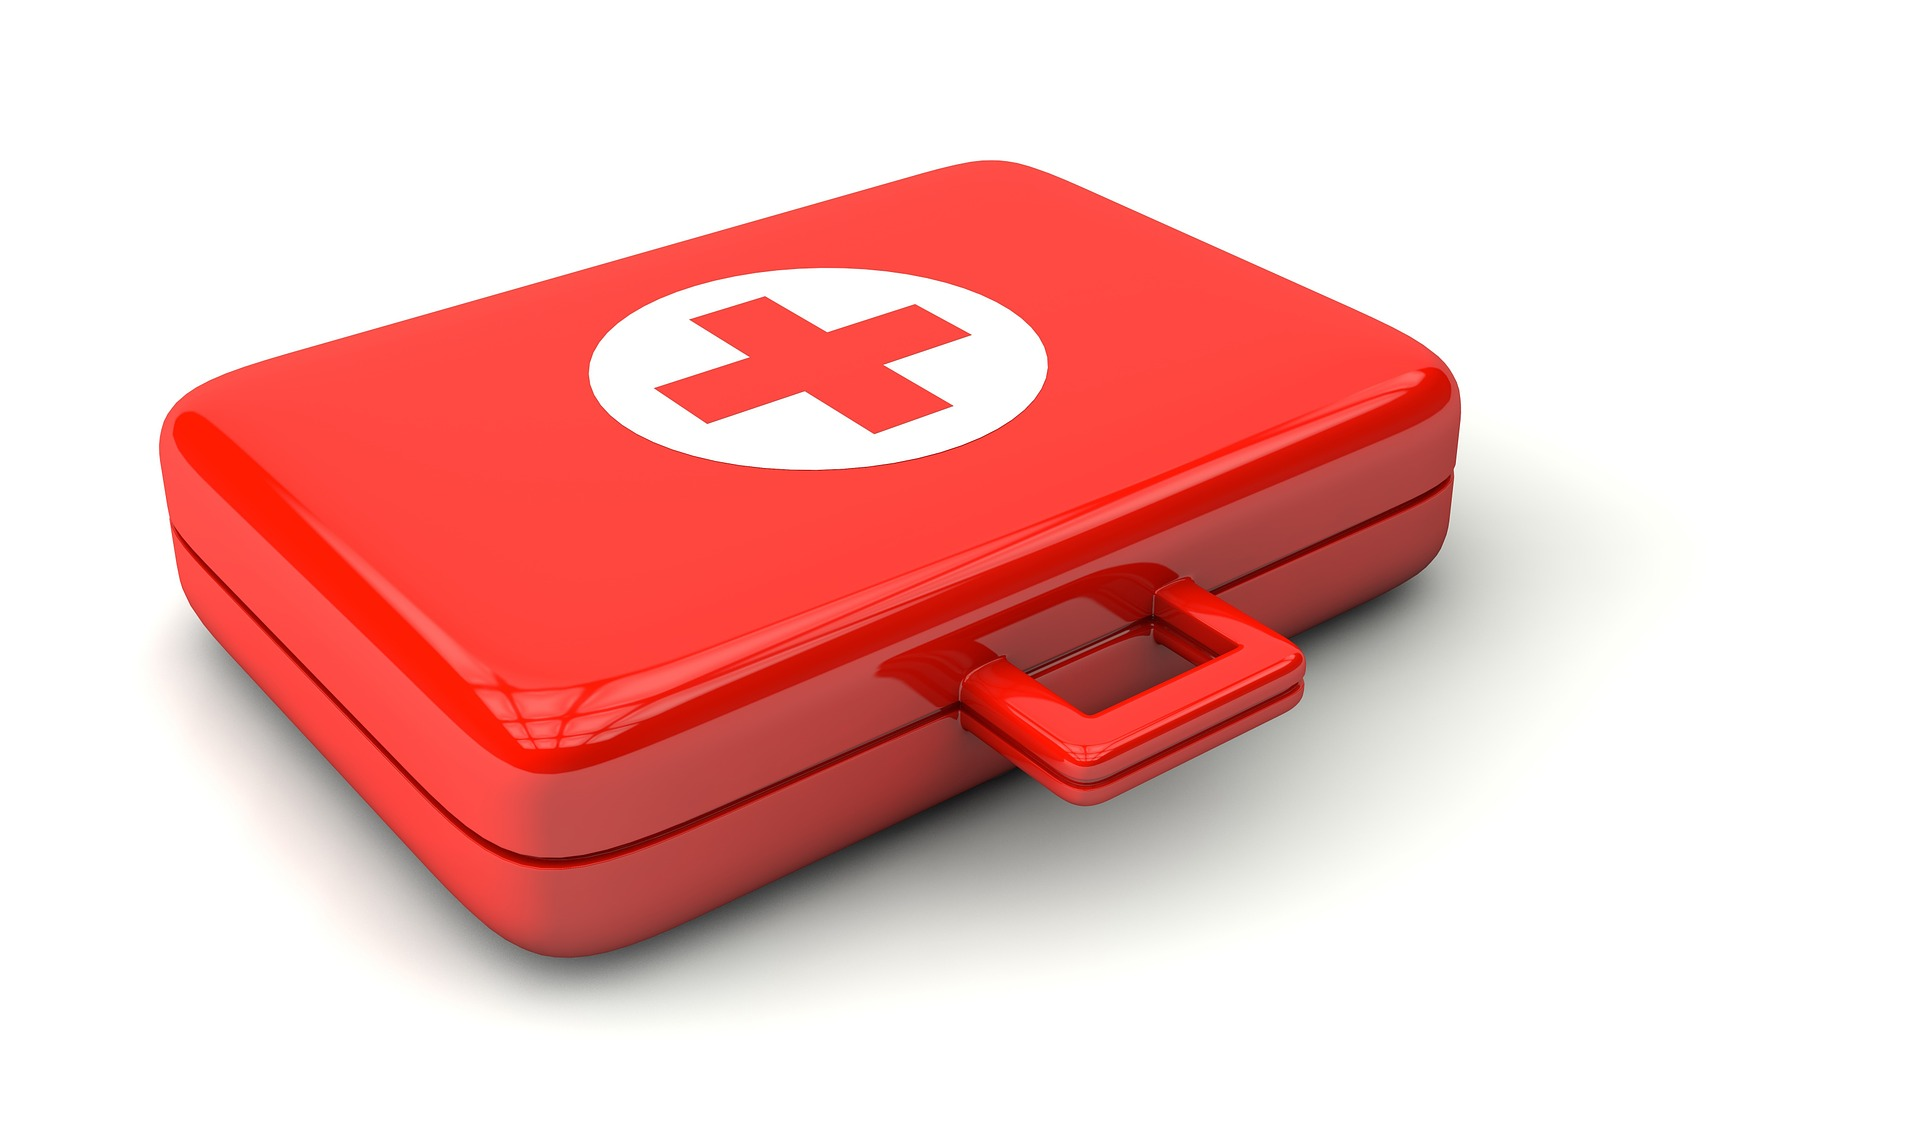 A gleaming red first aid kit with a handle for easy carrying.